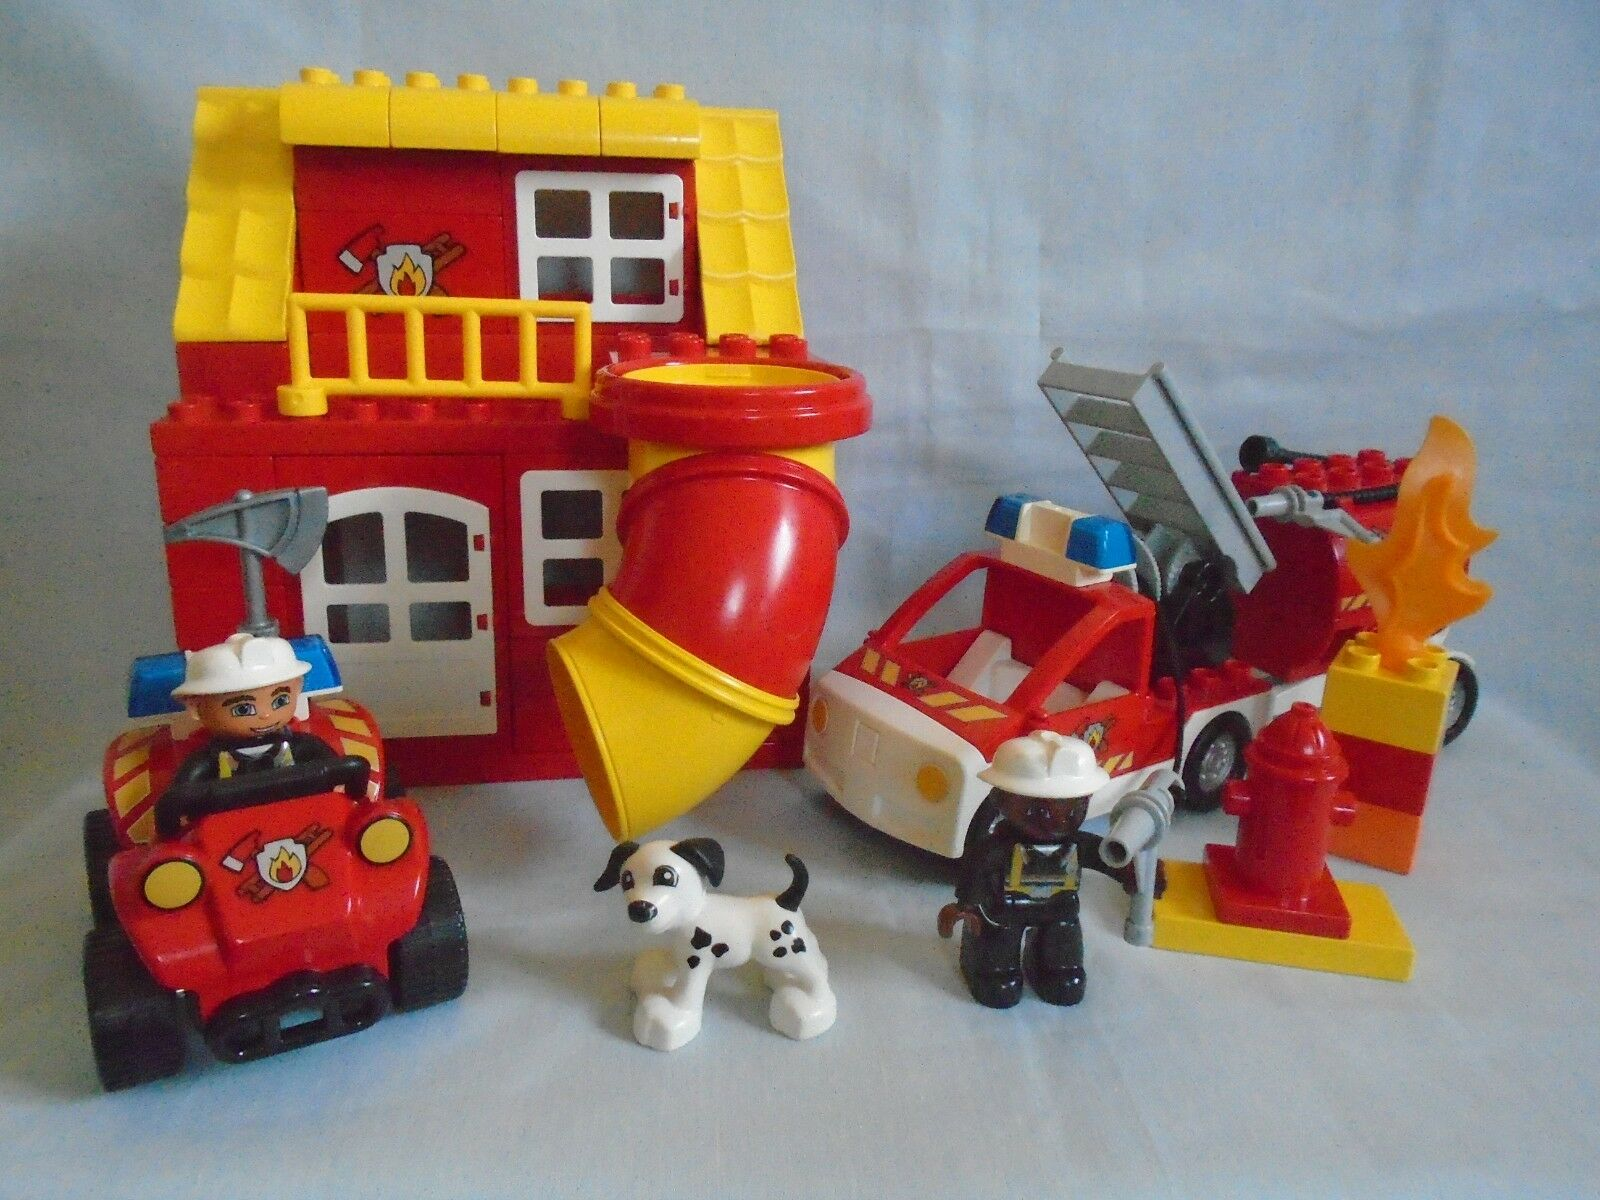 Lego Duplo Emergency Services Fire Station No1 with fire vehicles & tunnel slide